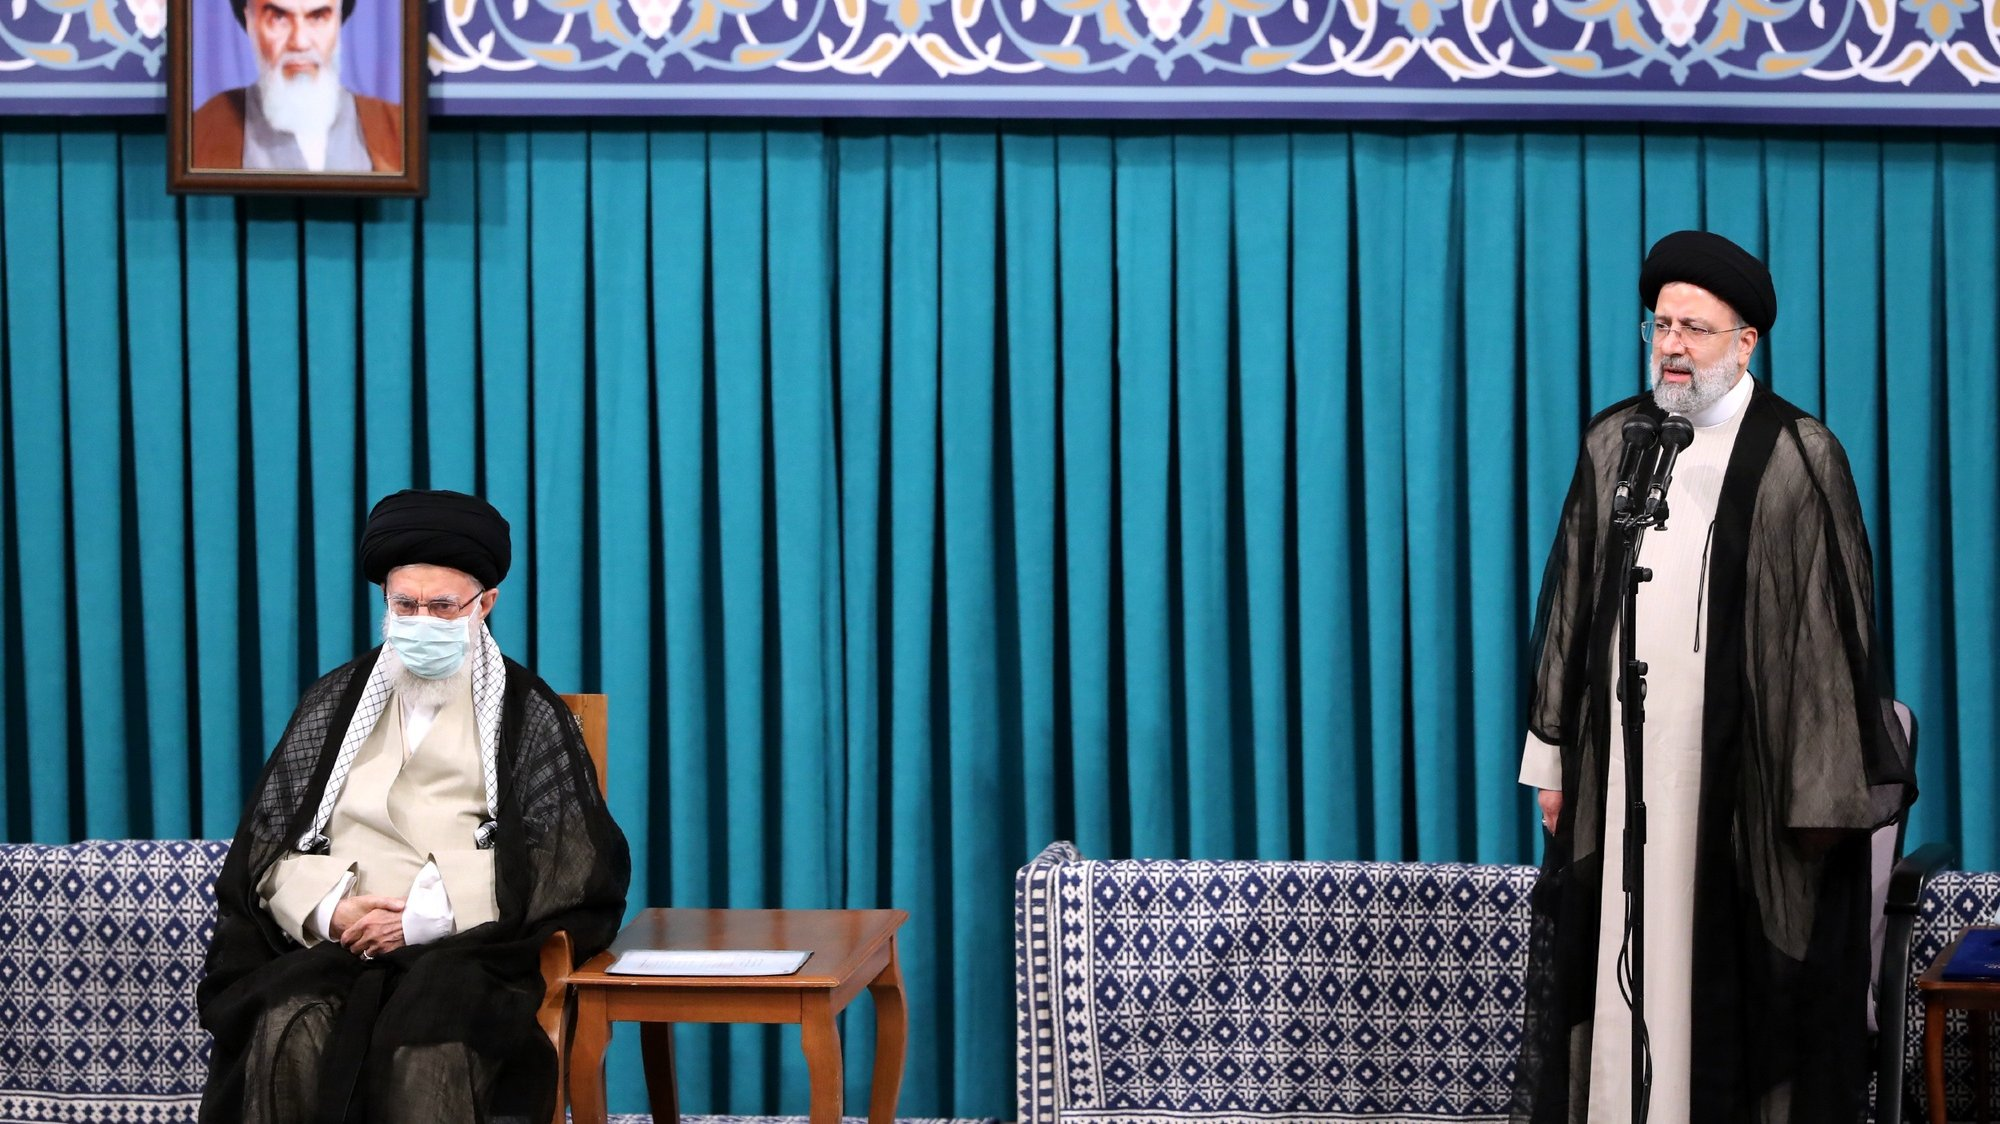 epa09389953 A handout picture made available by Iran's Supreme Leader Office shows Iranian supreme leader Ayatollah Ali khamenei (L) listens to new Iranian president Ebrahim Raisi (R), in Tehran, Iran, 03 August 2021. Iranian presidents are first approved by the supreme leader, who according to constitution is the actual head of state, and then take the oath before parliament. Ebrahim Raisi has been inaugurated as the new president of the Islamic Republic of Iran on 03 August 2021, as the country is facing an economic crisis along with the coronavirus disease (COVID-19) pandemic.  EPA/IRAN'S SUPREME LEADER OFFICE HANDOUT  HANDOUT EDITORIAL USE ONLY/NO SALES